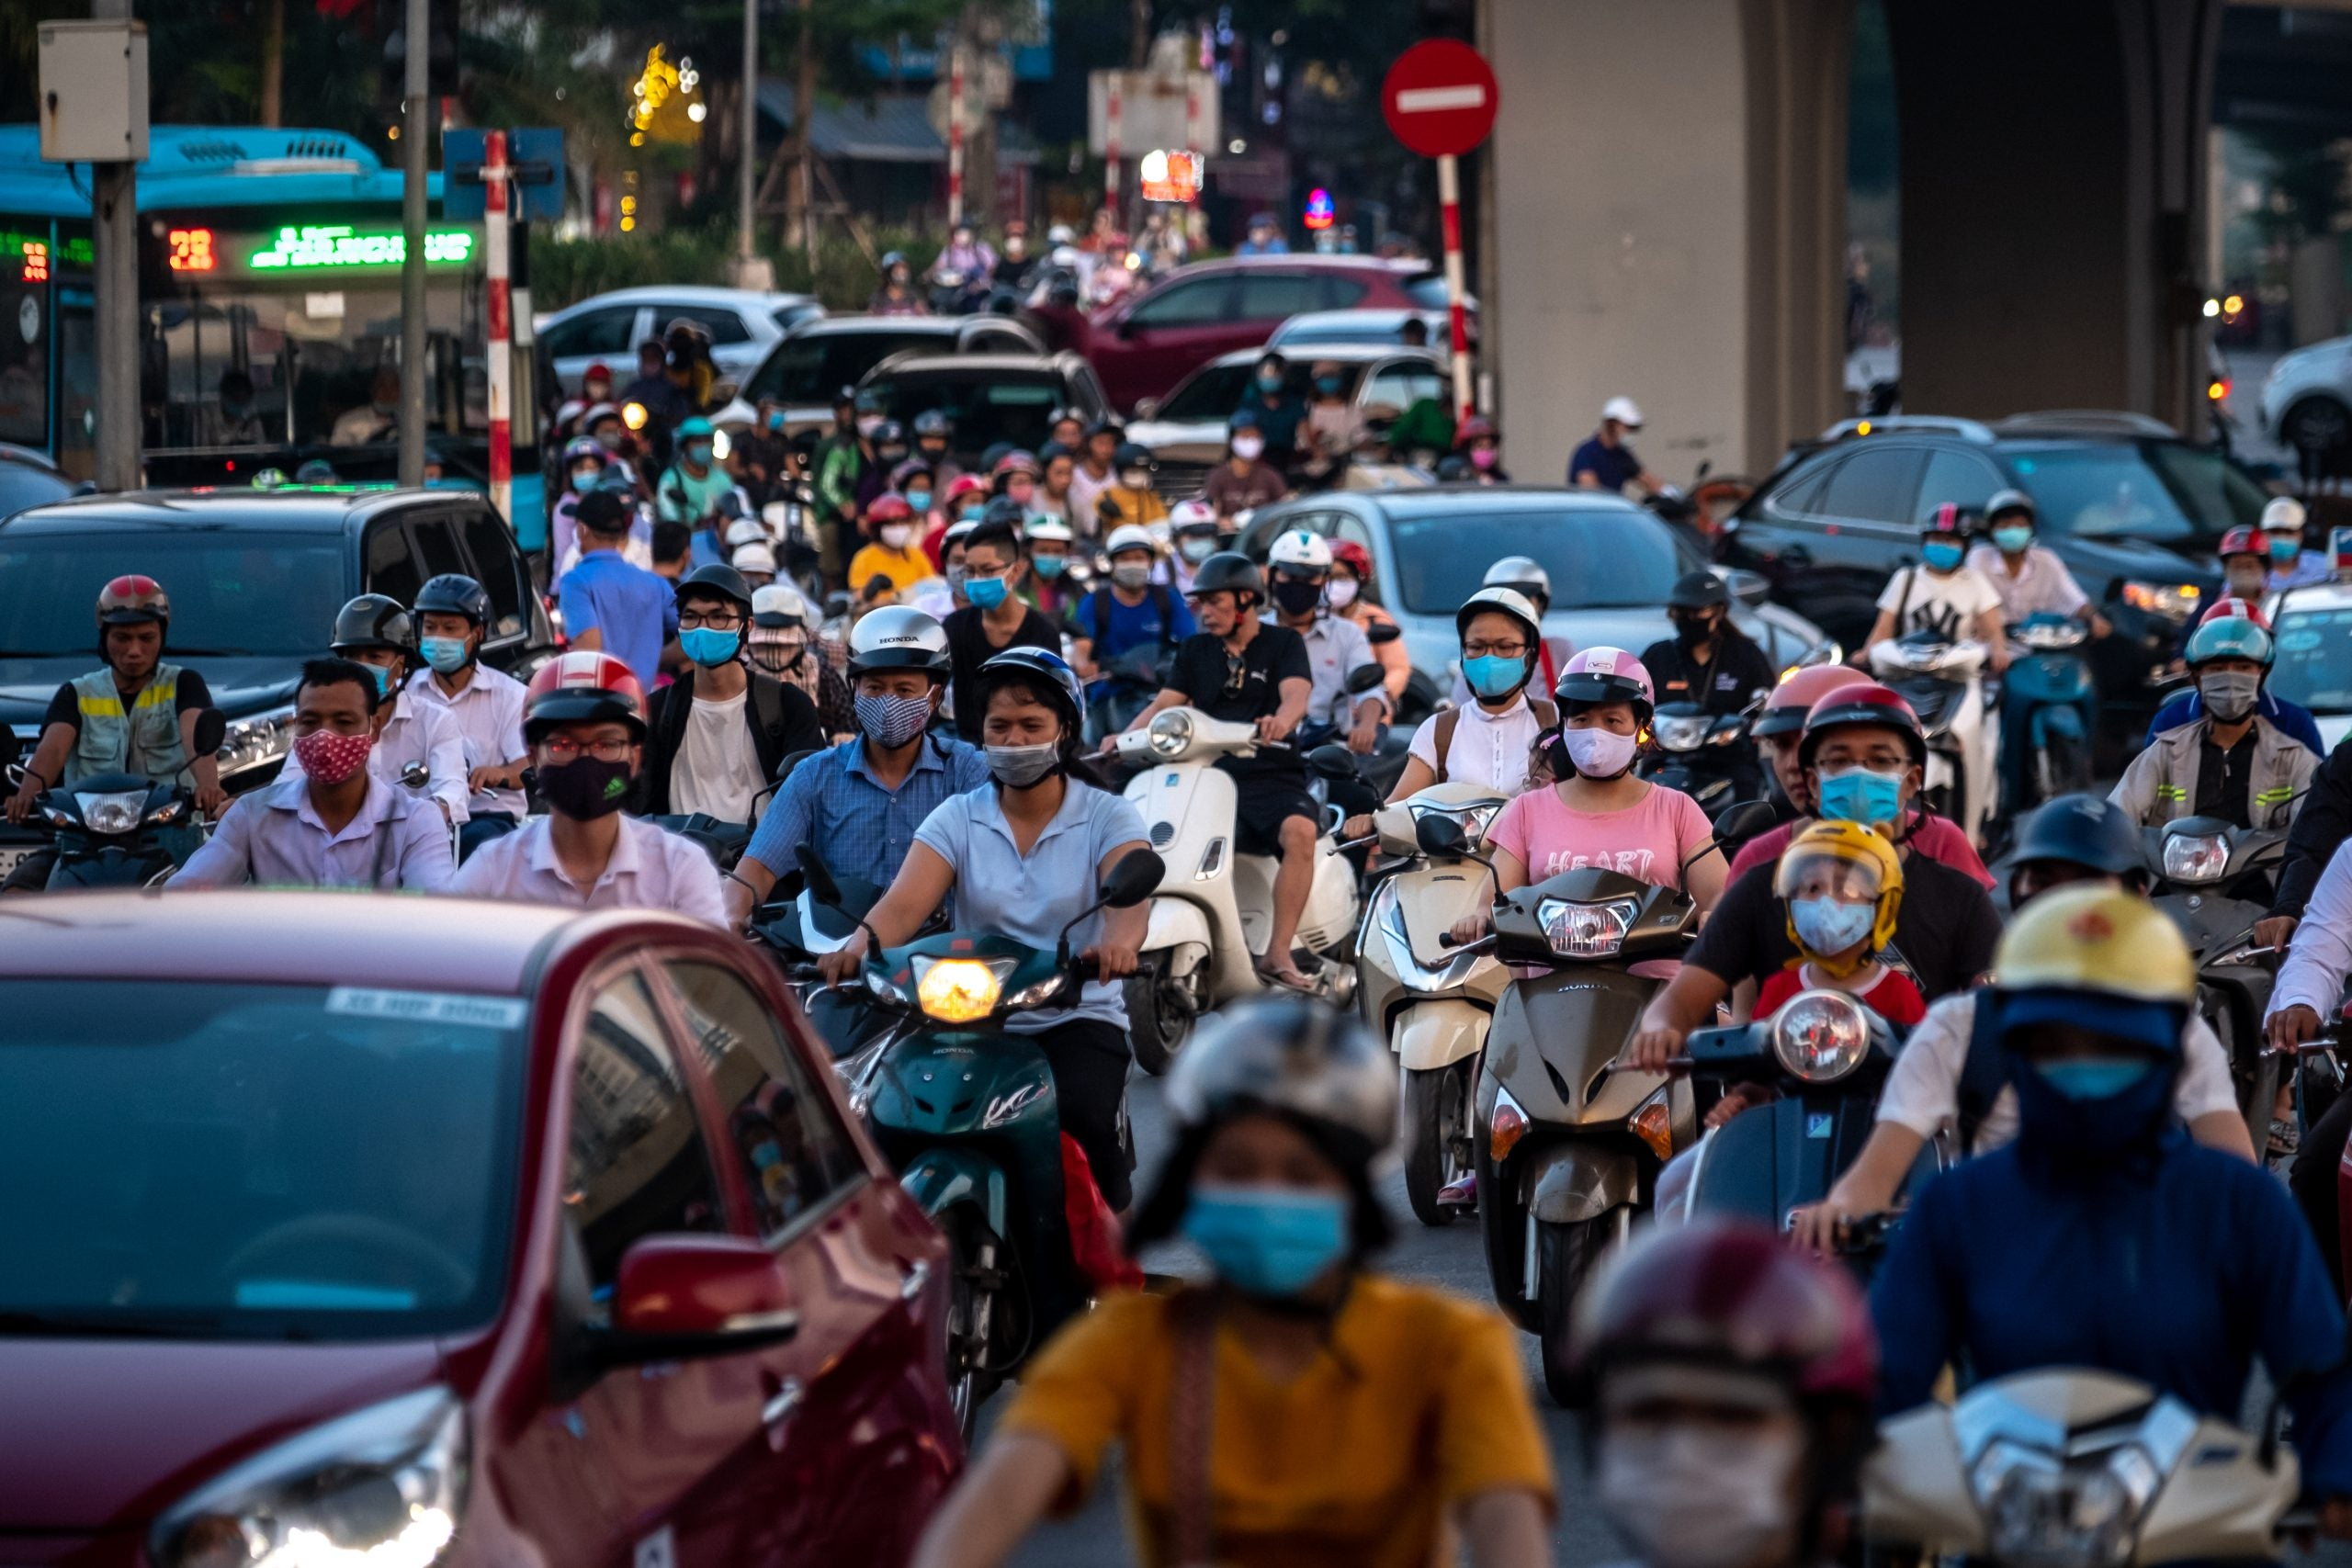 Order governed Ho Chi Minh City during its effective first lockdown, but laxity has returned